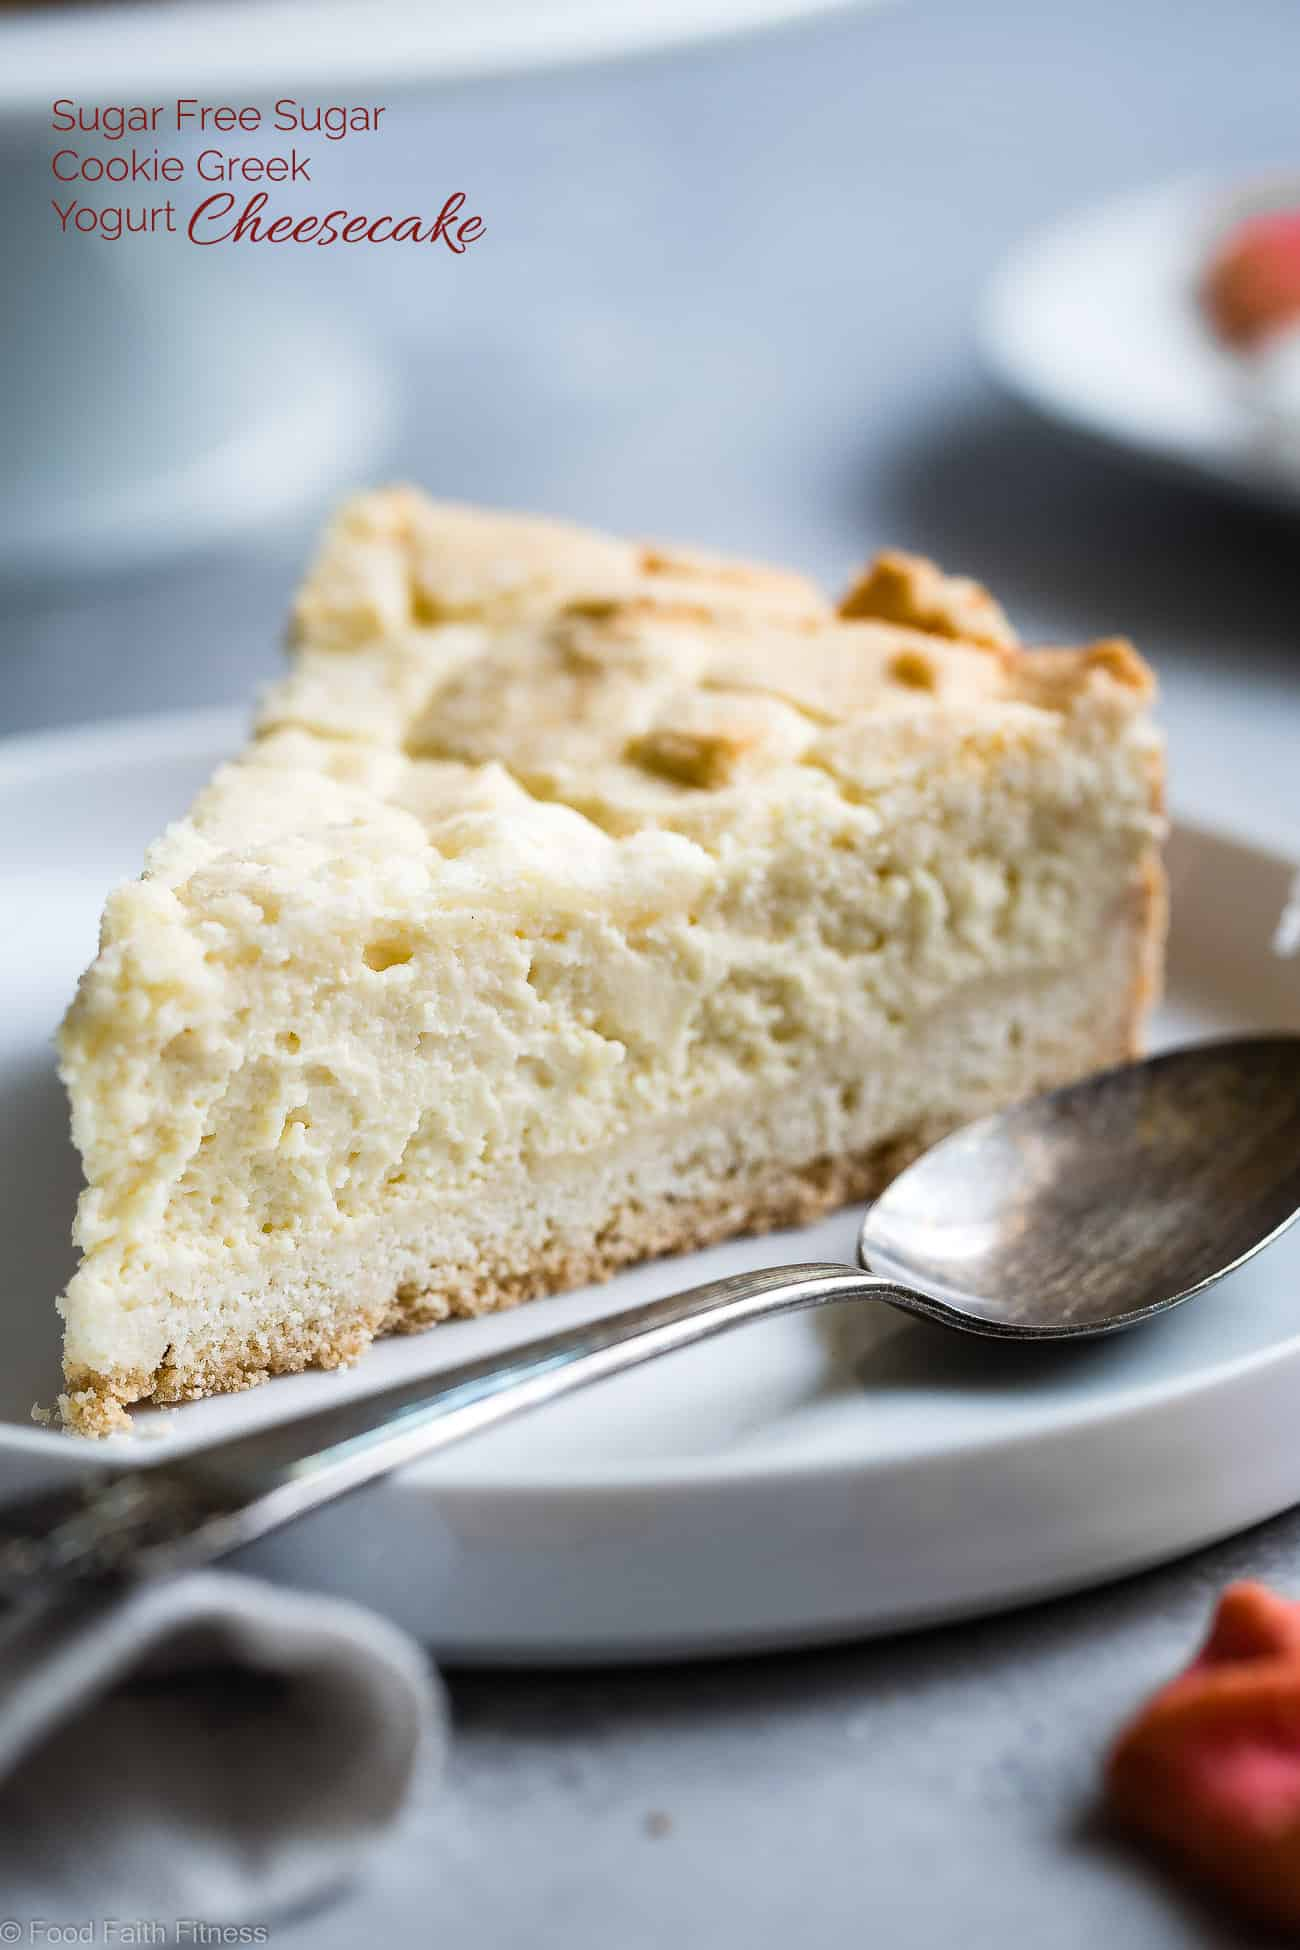 Sugar Free Greek Yogurt Cheesecake - This gluten free cheesecake is an easy dessert that combines 2 Holiday treats ! It's so creamy you won't believe it's healthy, sugar free and only 235 calories! | Foodfaithfitness.com | @FoodFaithFit